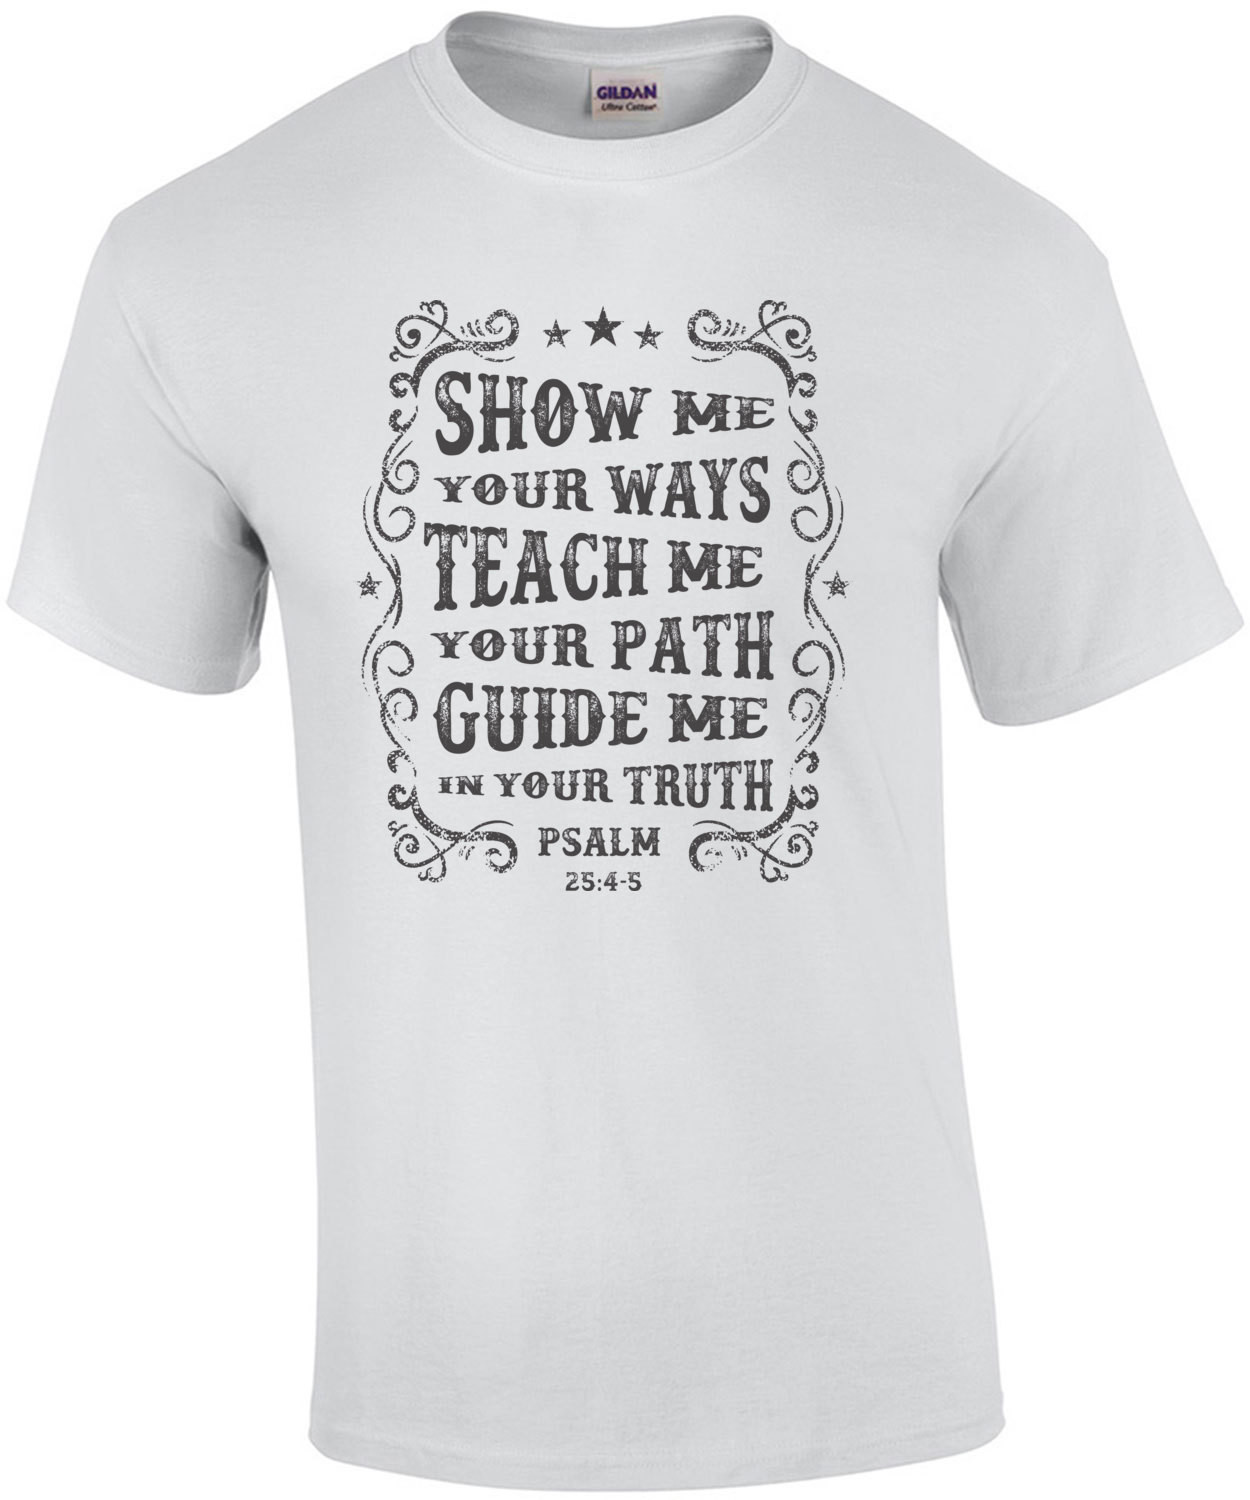 Show Me Your Ways Teach Me Your Path Guide Me In Your Truth Psalm 25 4 5 Biblical T-Shirt